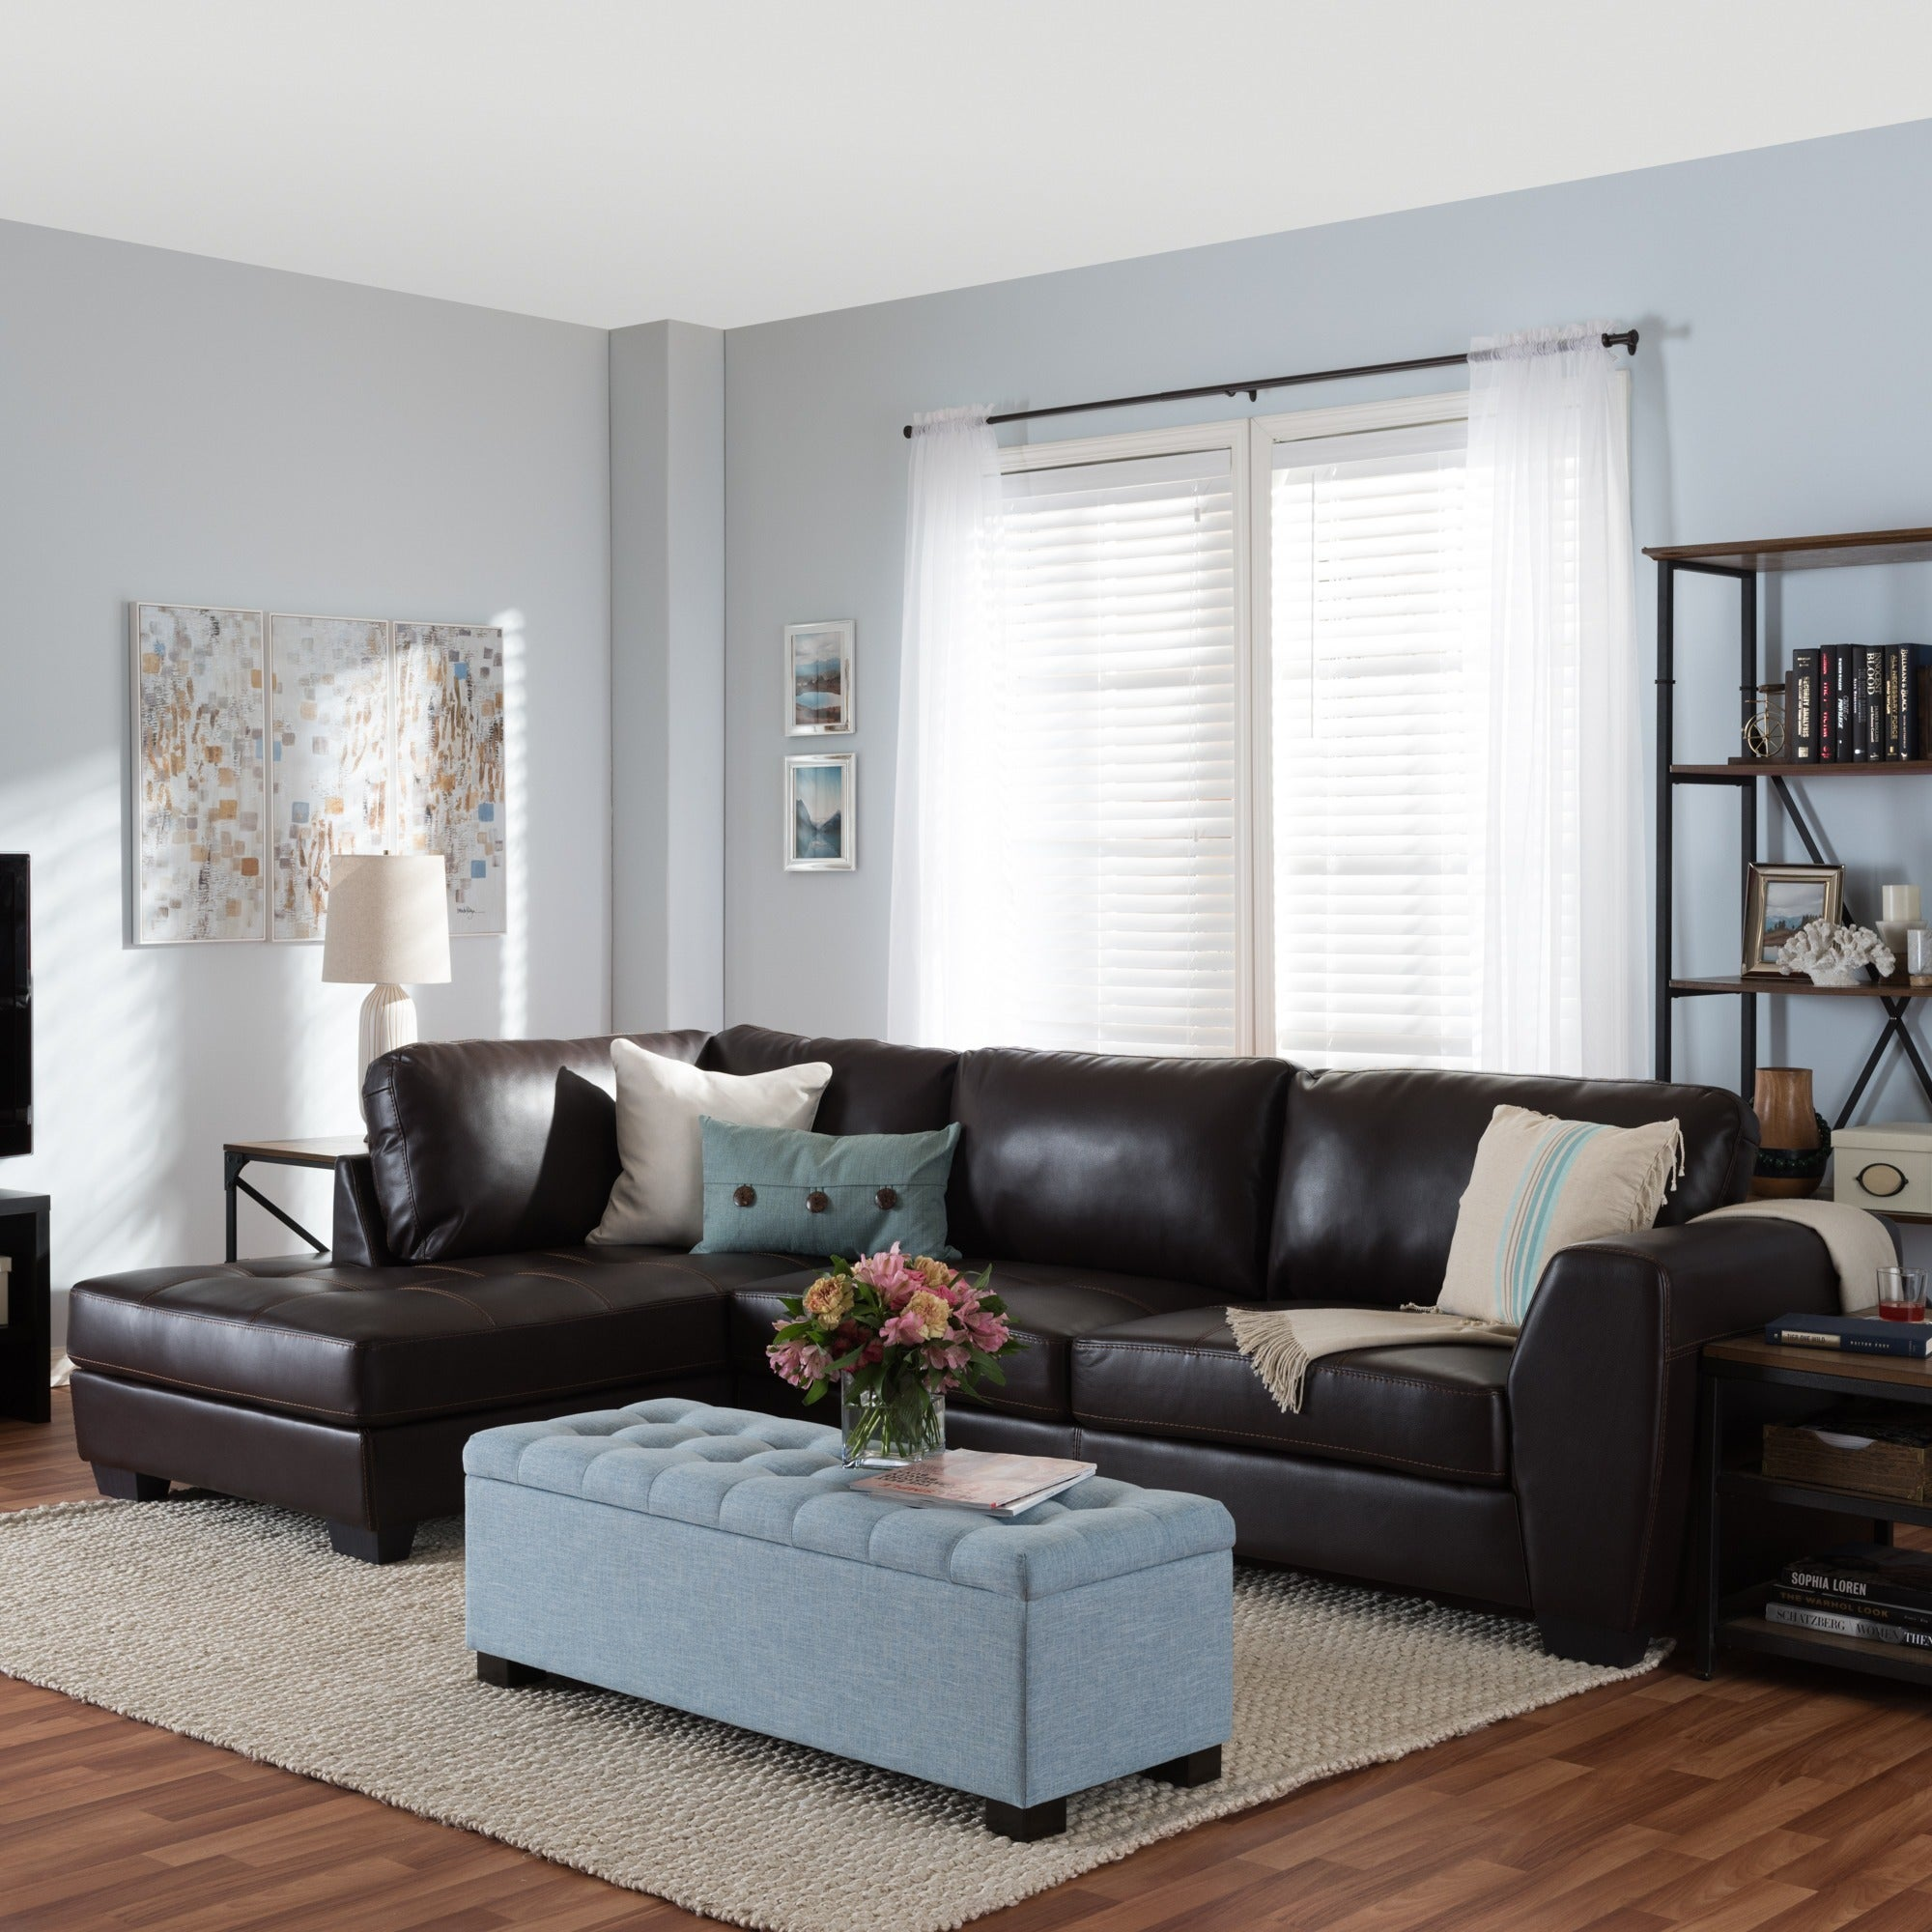 by your sliding windows leather white furniture l sofas of spaces for to cozy brown wooden small couch connected modern sectional look floor room glass on reorganize reception